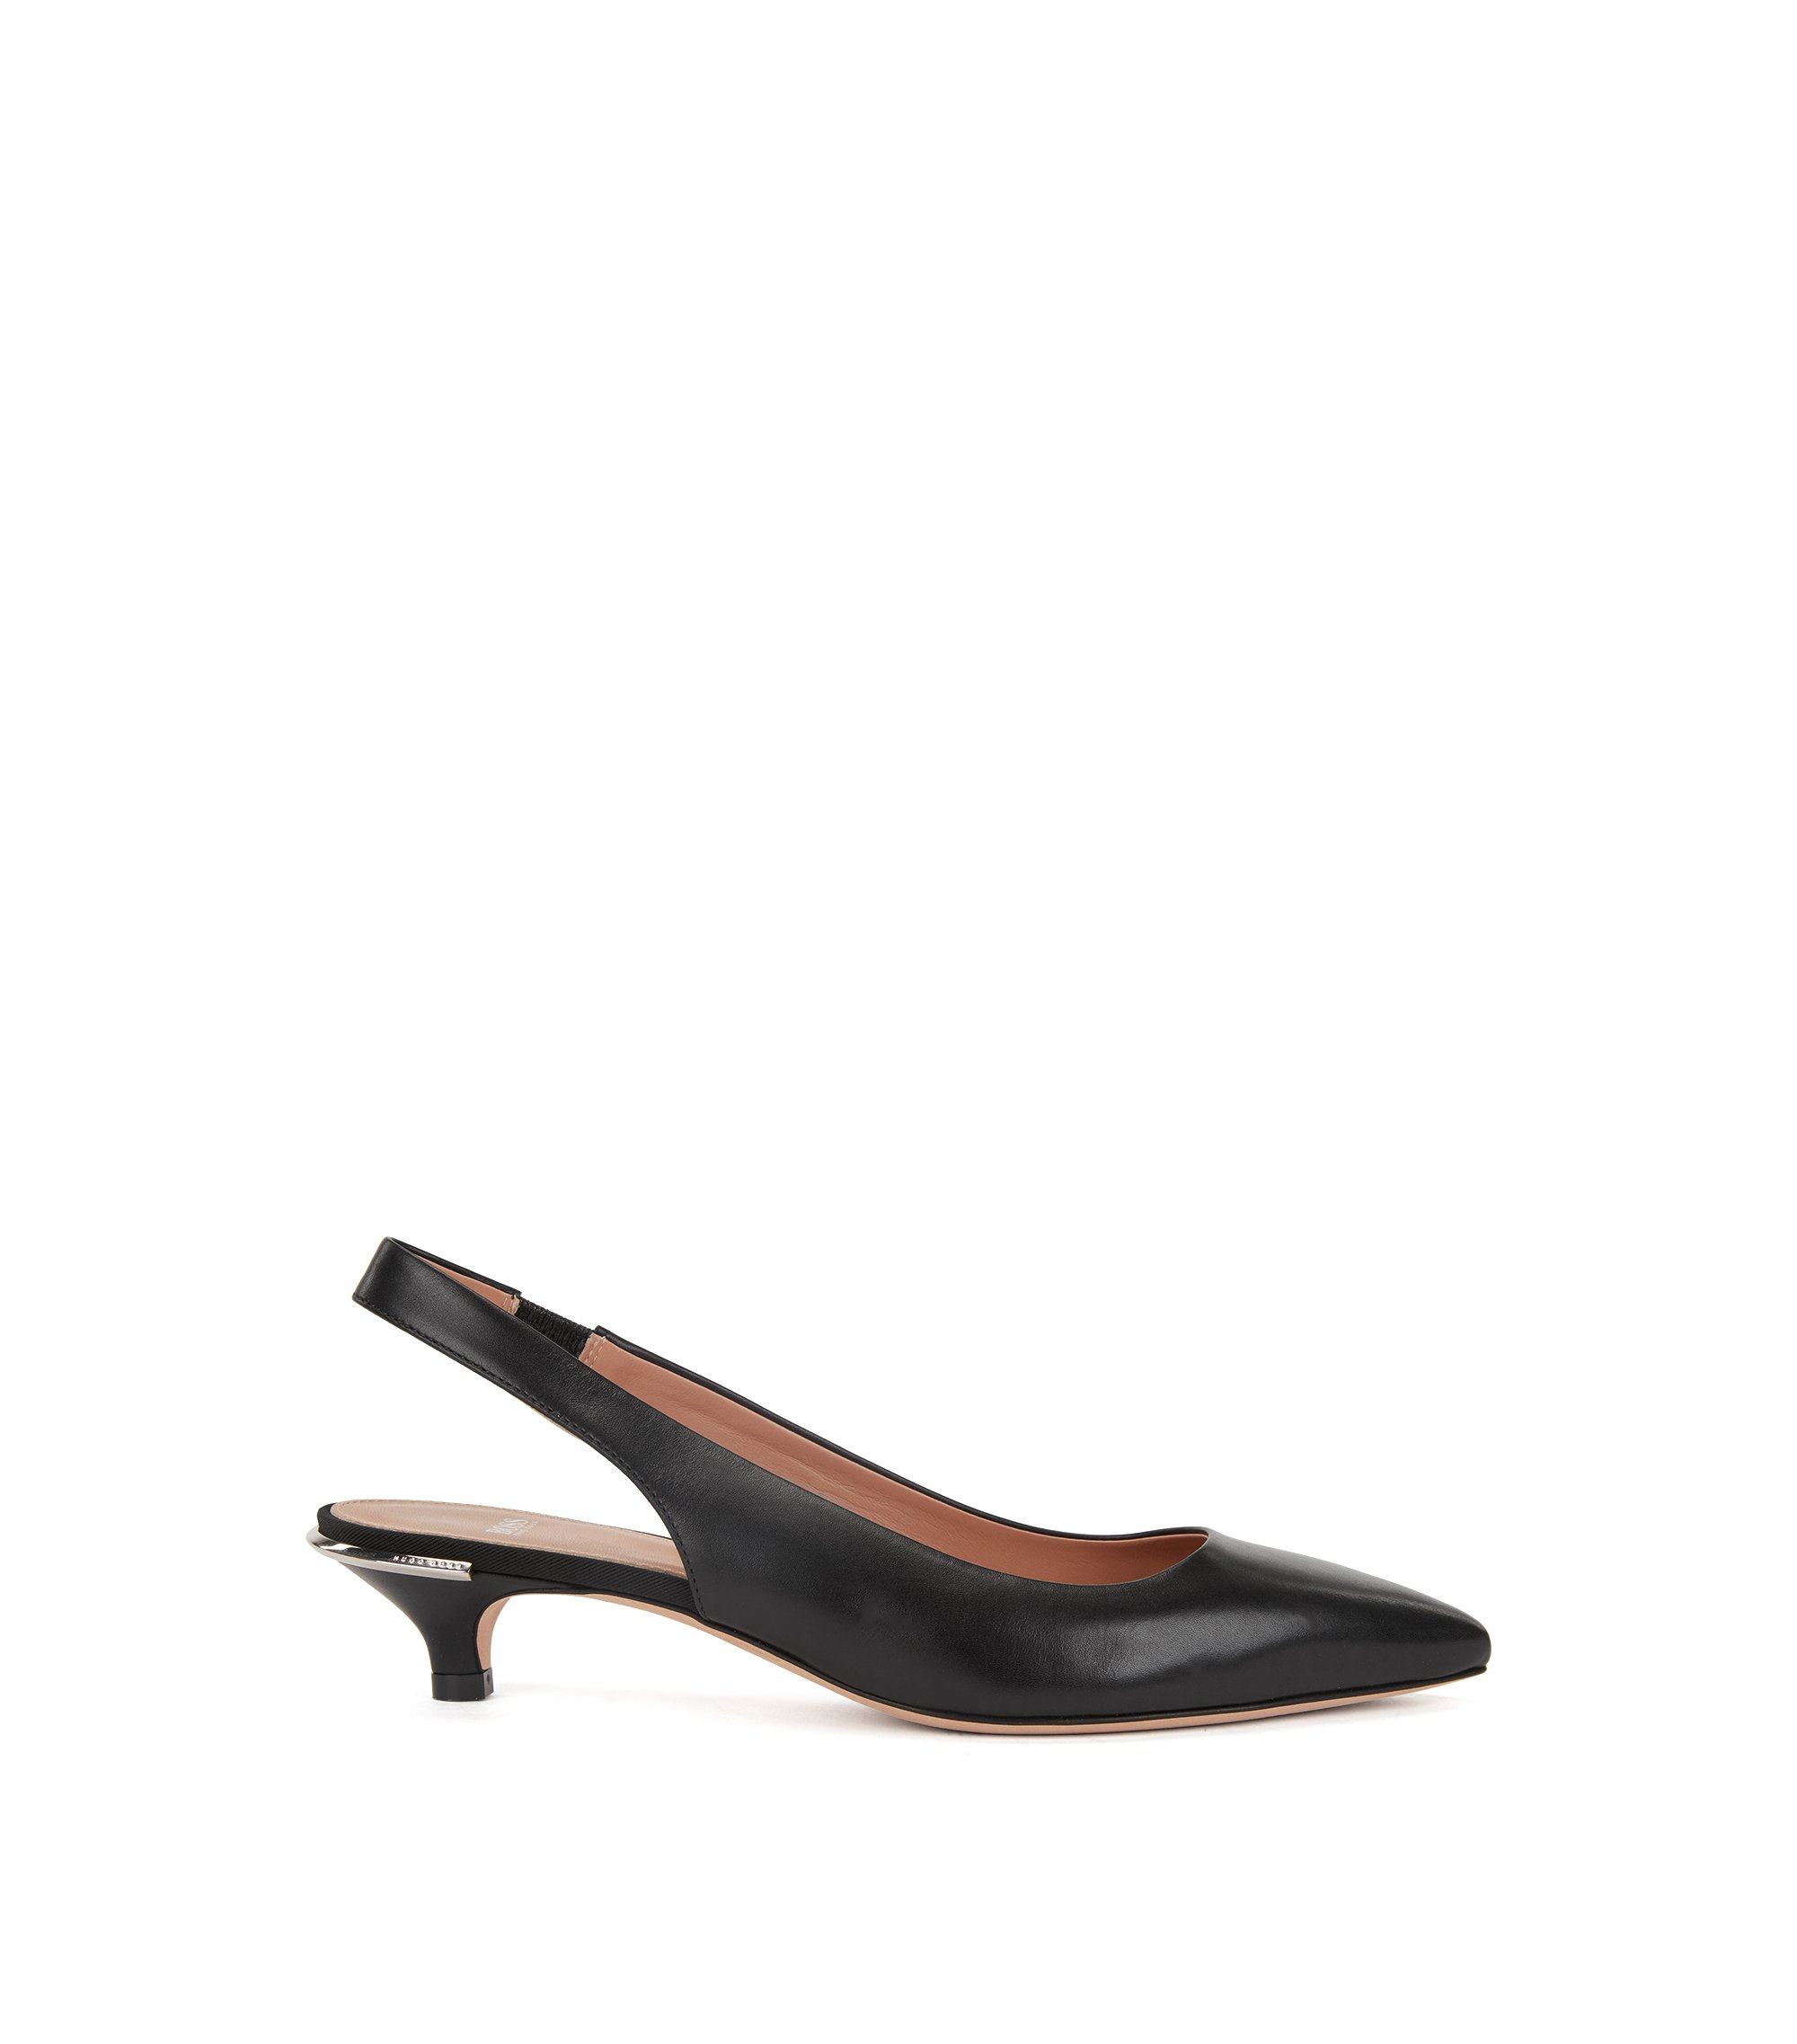 Calf-leather pumps with silver-trimmed kitten heel, Black